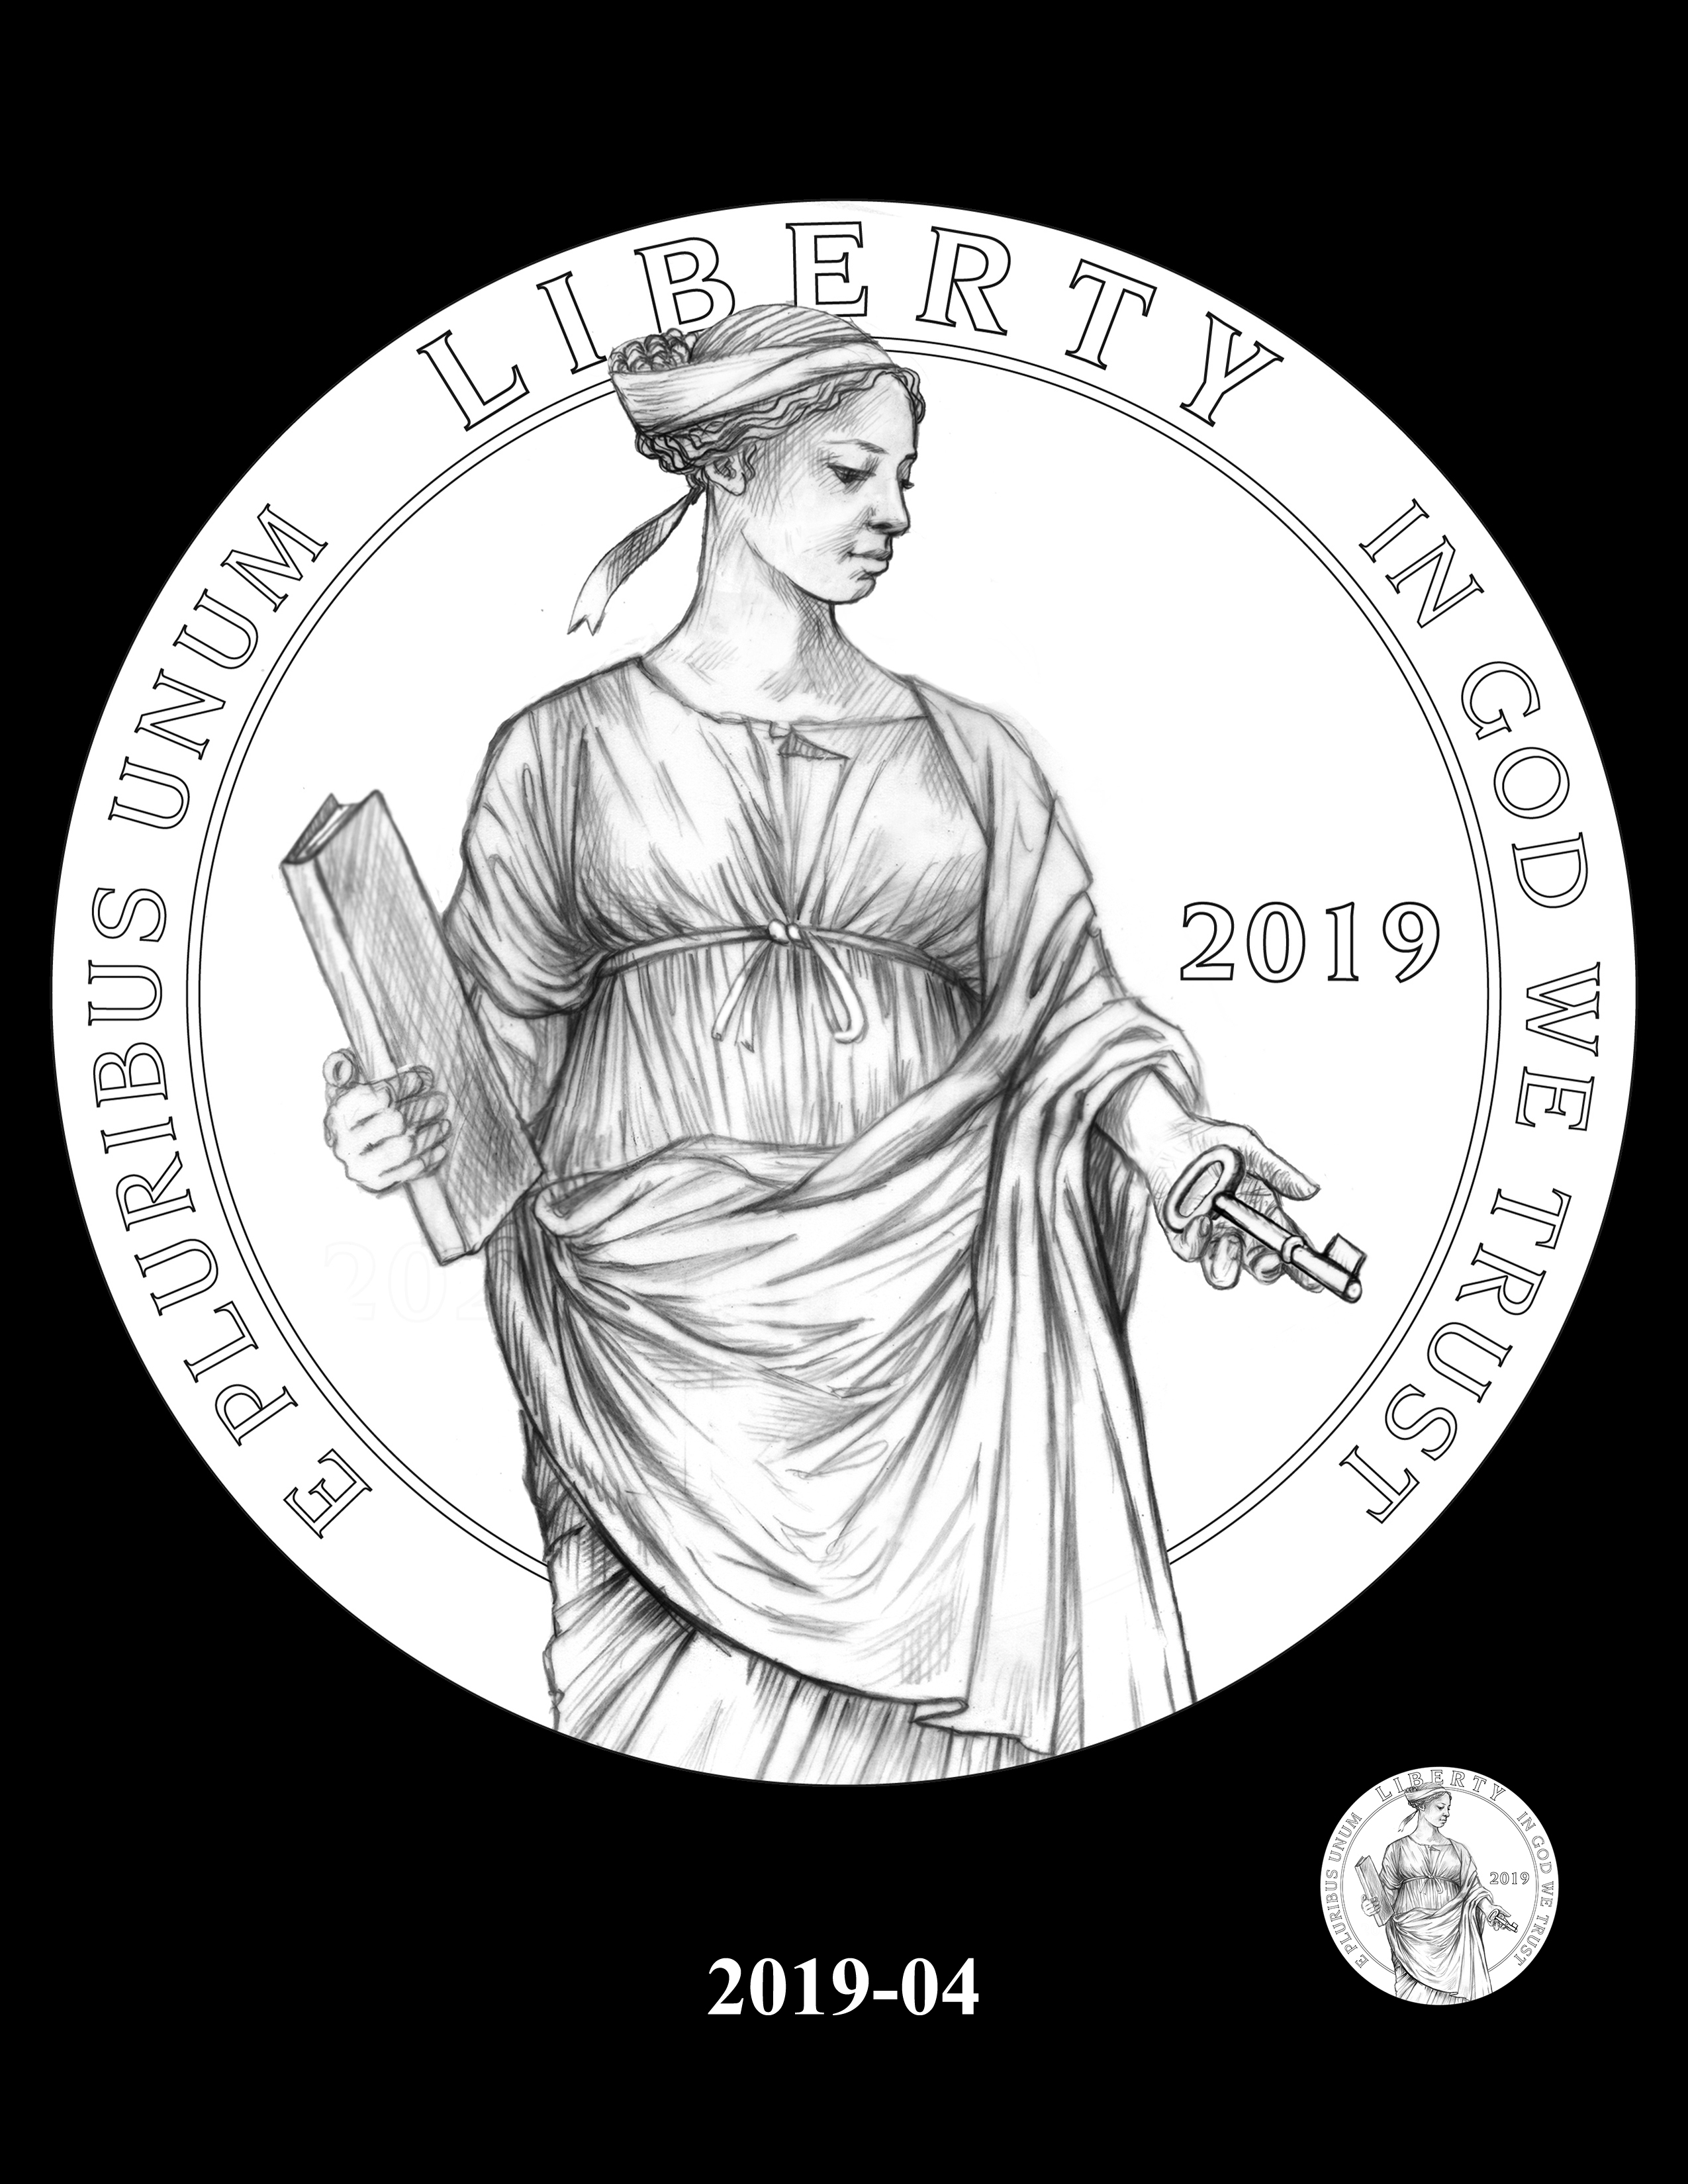 SET04-2019-04 - 2018 2019 and 2020 American Eagle Platinum Proof Program